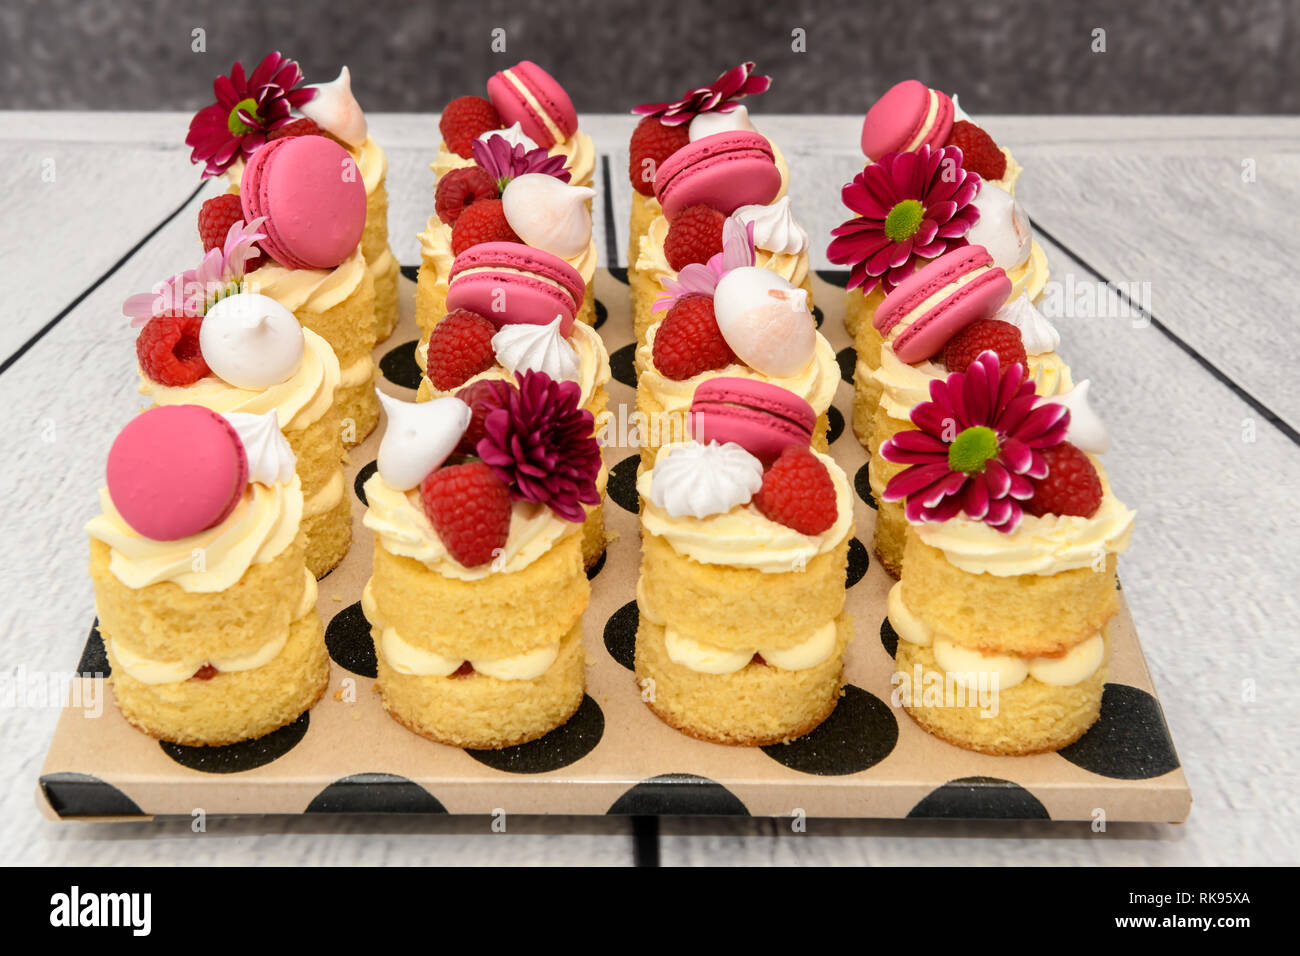 Awesome Individual Naked Mini Birthday Cakes Stock Photo 235615474 Alamy Funny Birthday Cards Online Inifofree Goldxyz